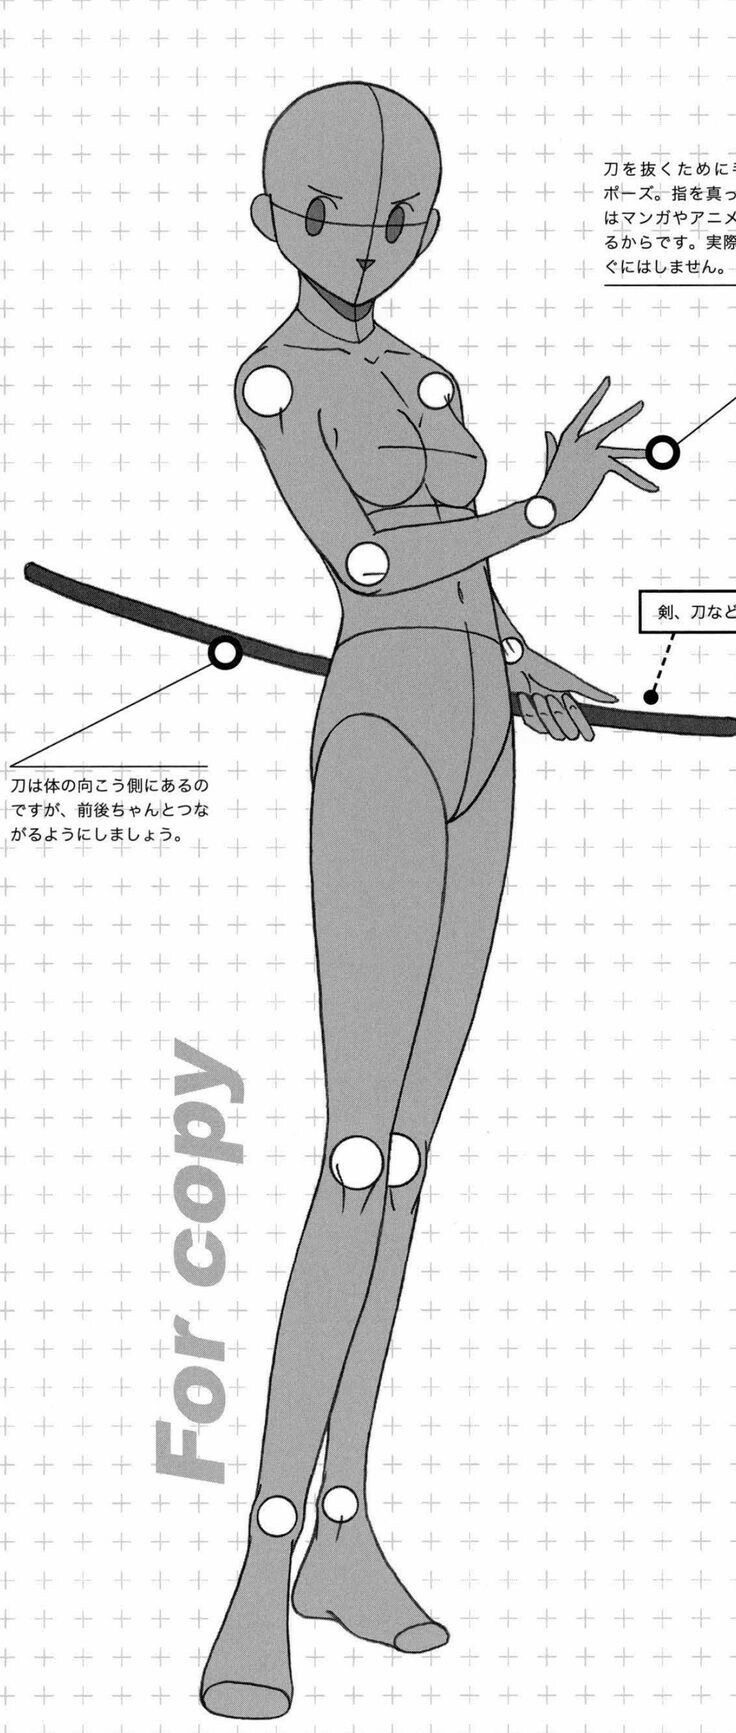 Female body fighting stance text girl katana sword how to draw manga anime